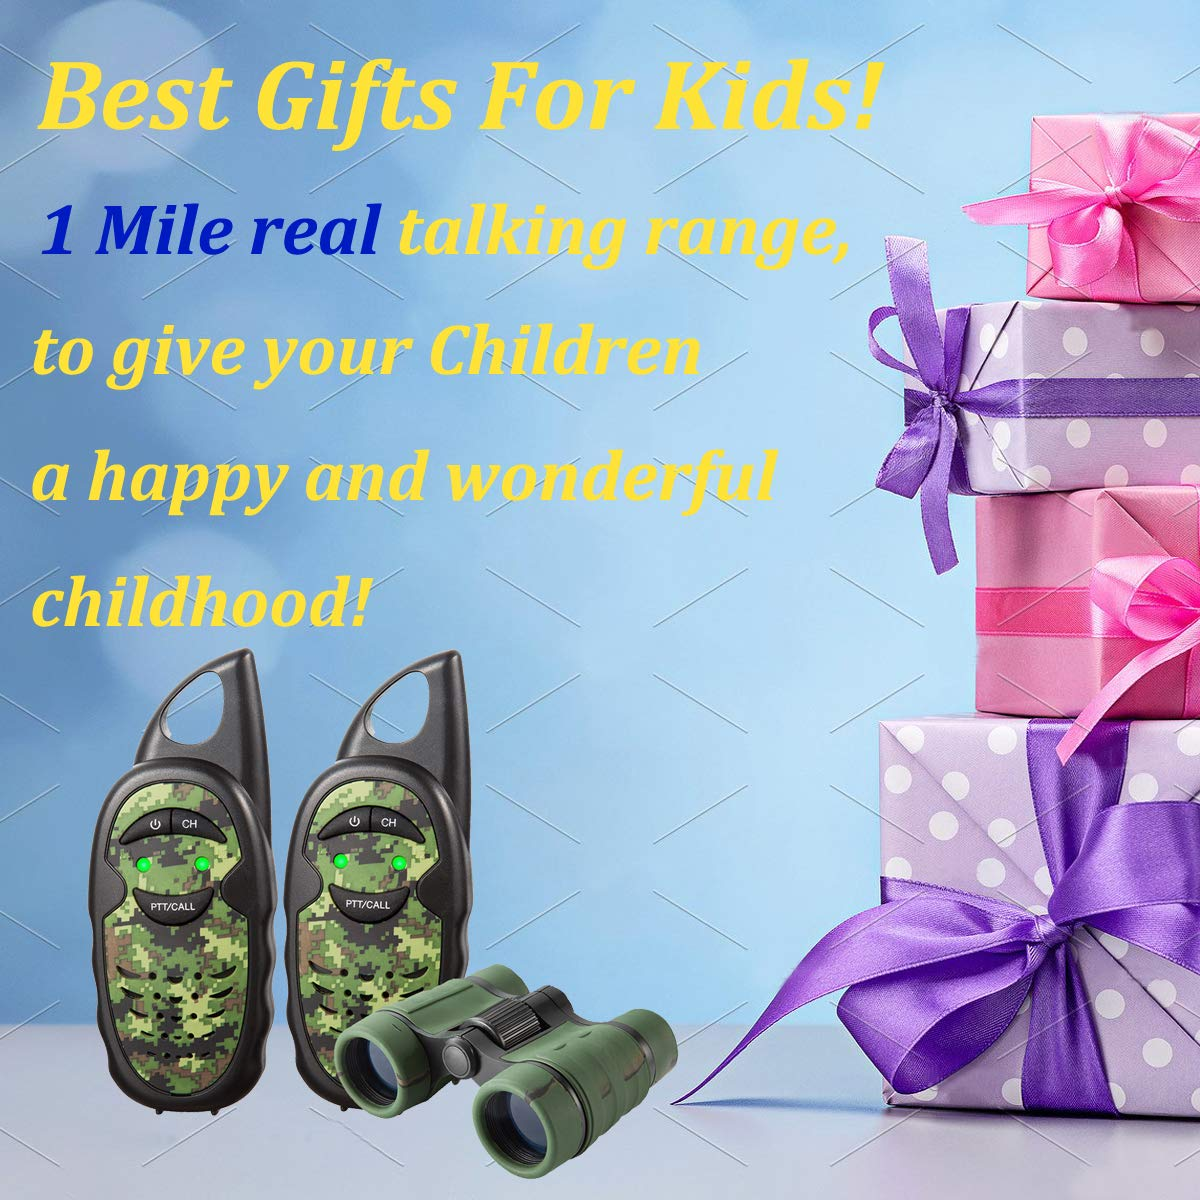 Walkie Talkies for Kids with Binoculars, 2 Mile FRS Technology 2 way radio Toy, Easy to Use for Little Hands Walkie Talkies for Boys, Walkie Talkie Set with Kids Binoculars,Best Toys Gifts for Kids by inYYTer (Image #5)